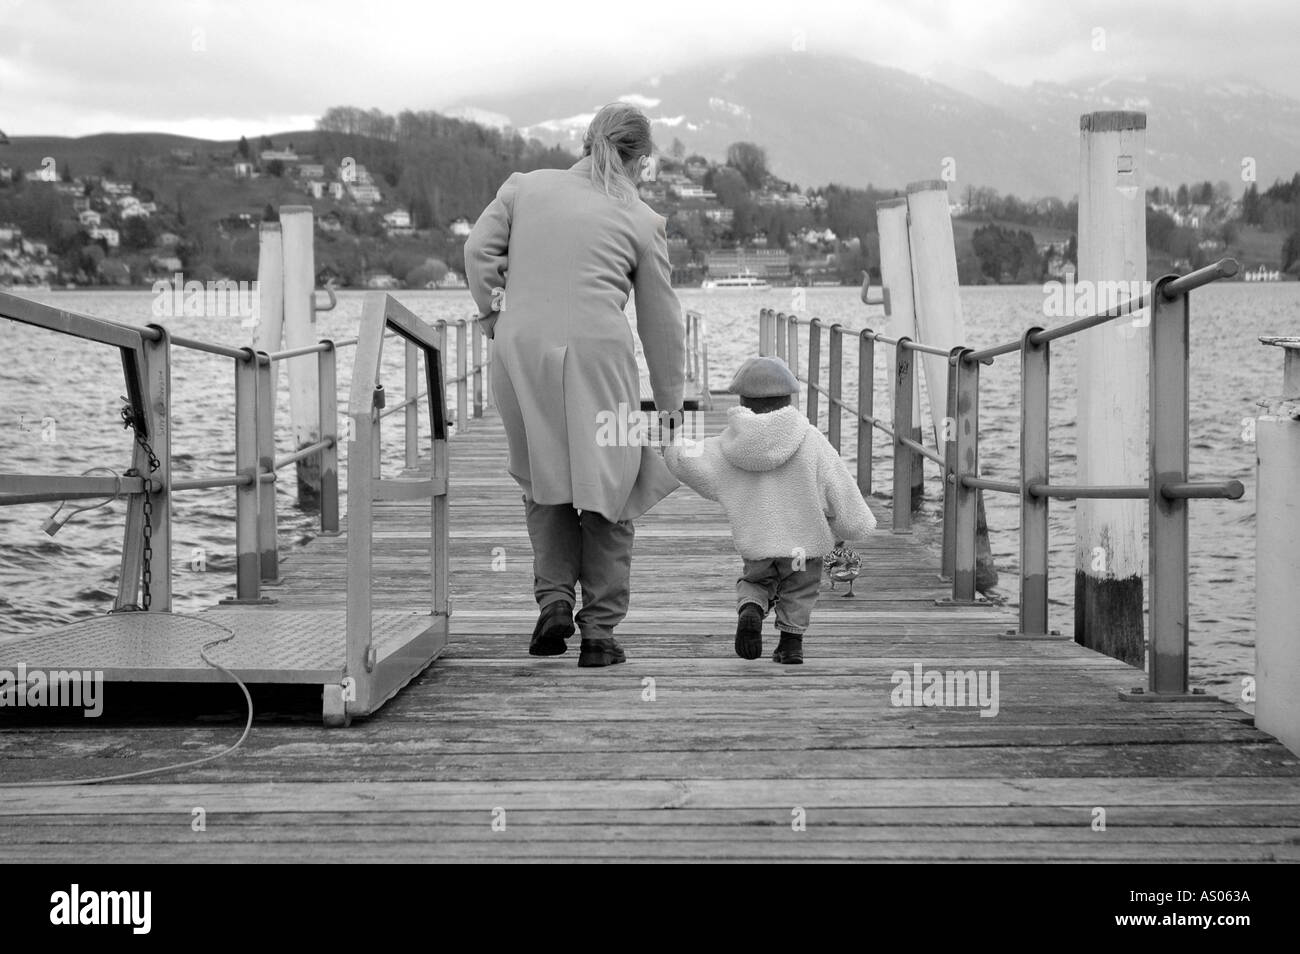 Life s a journey mother and toddler walk on a peer by lake lucerne - Stock Image